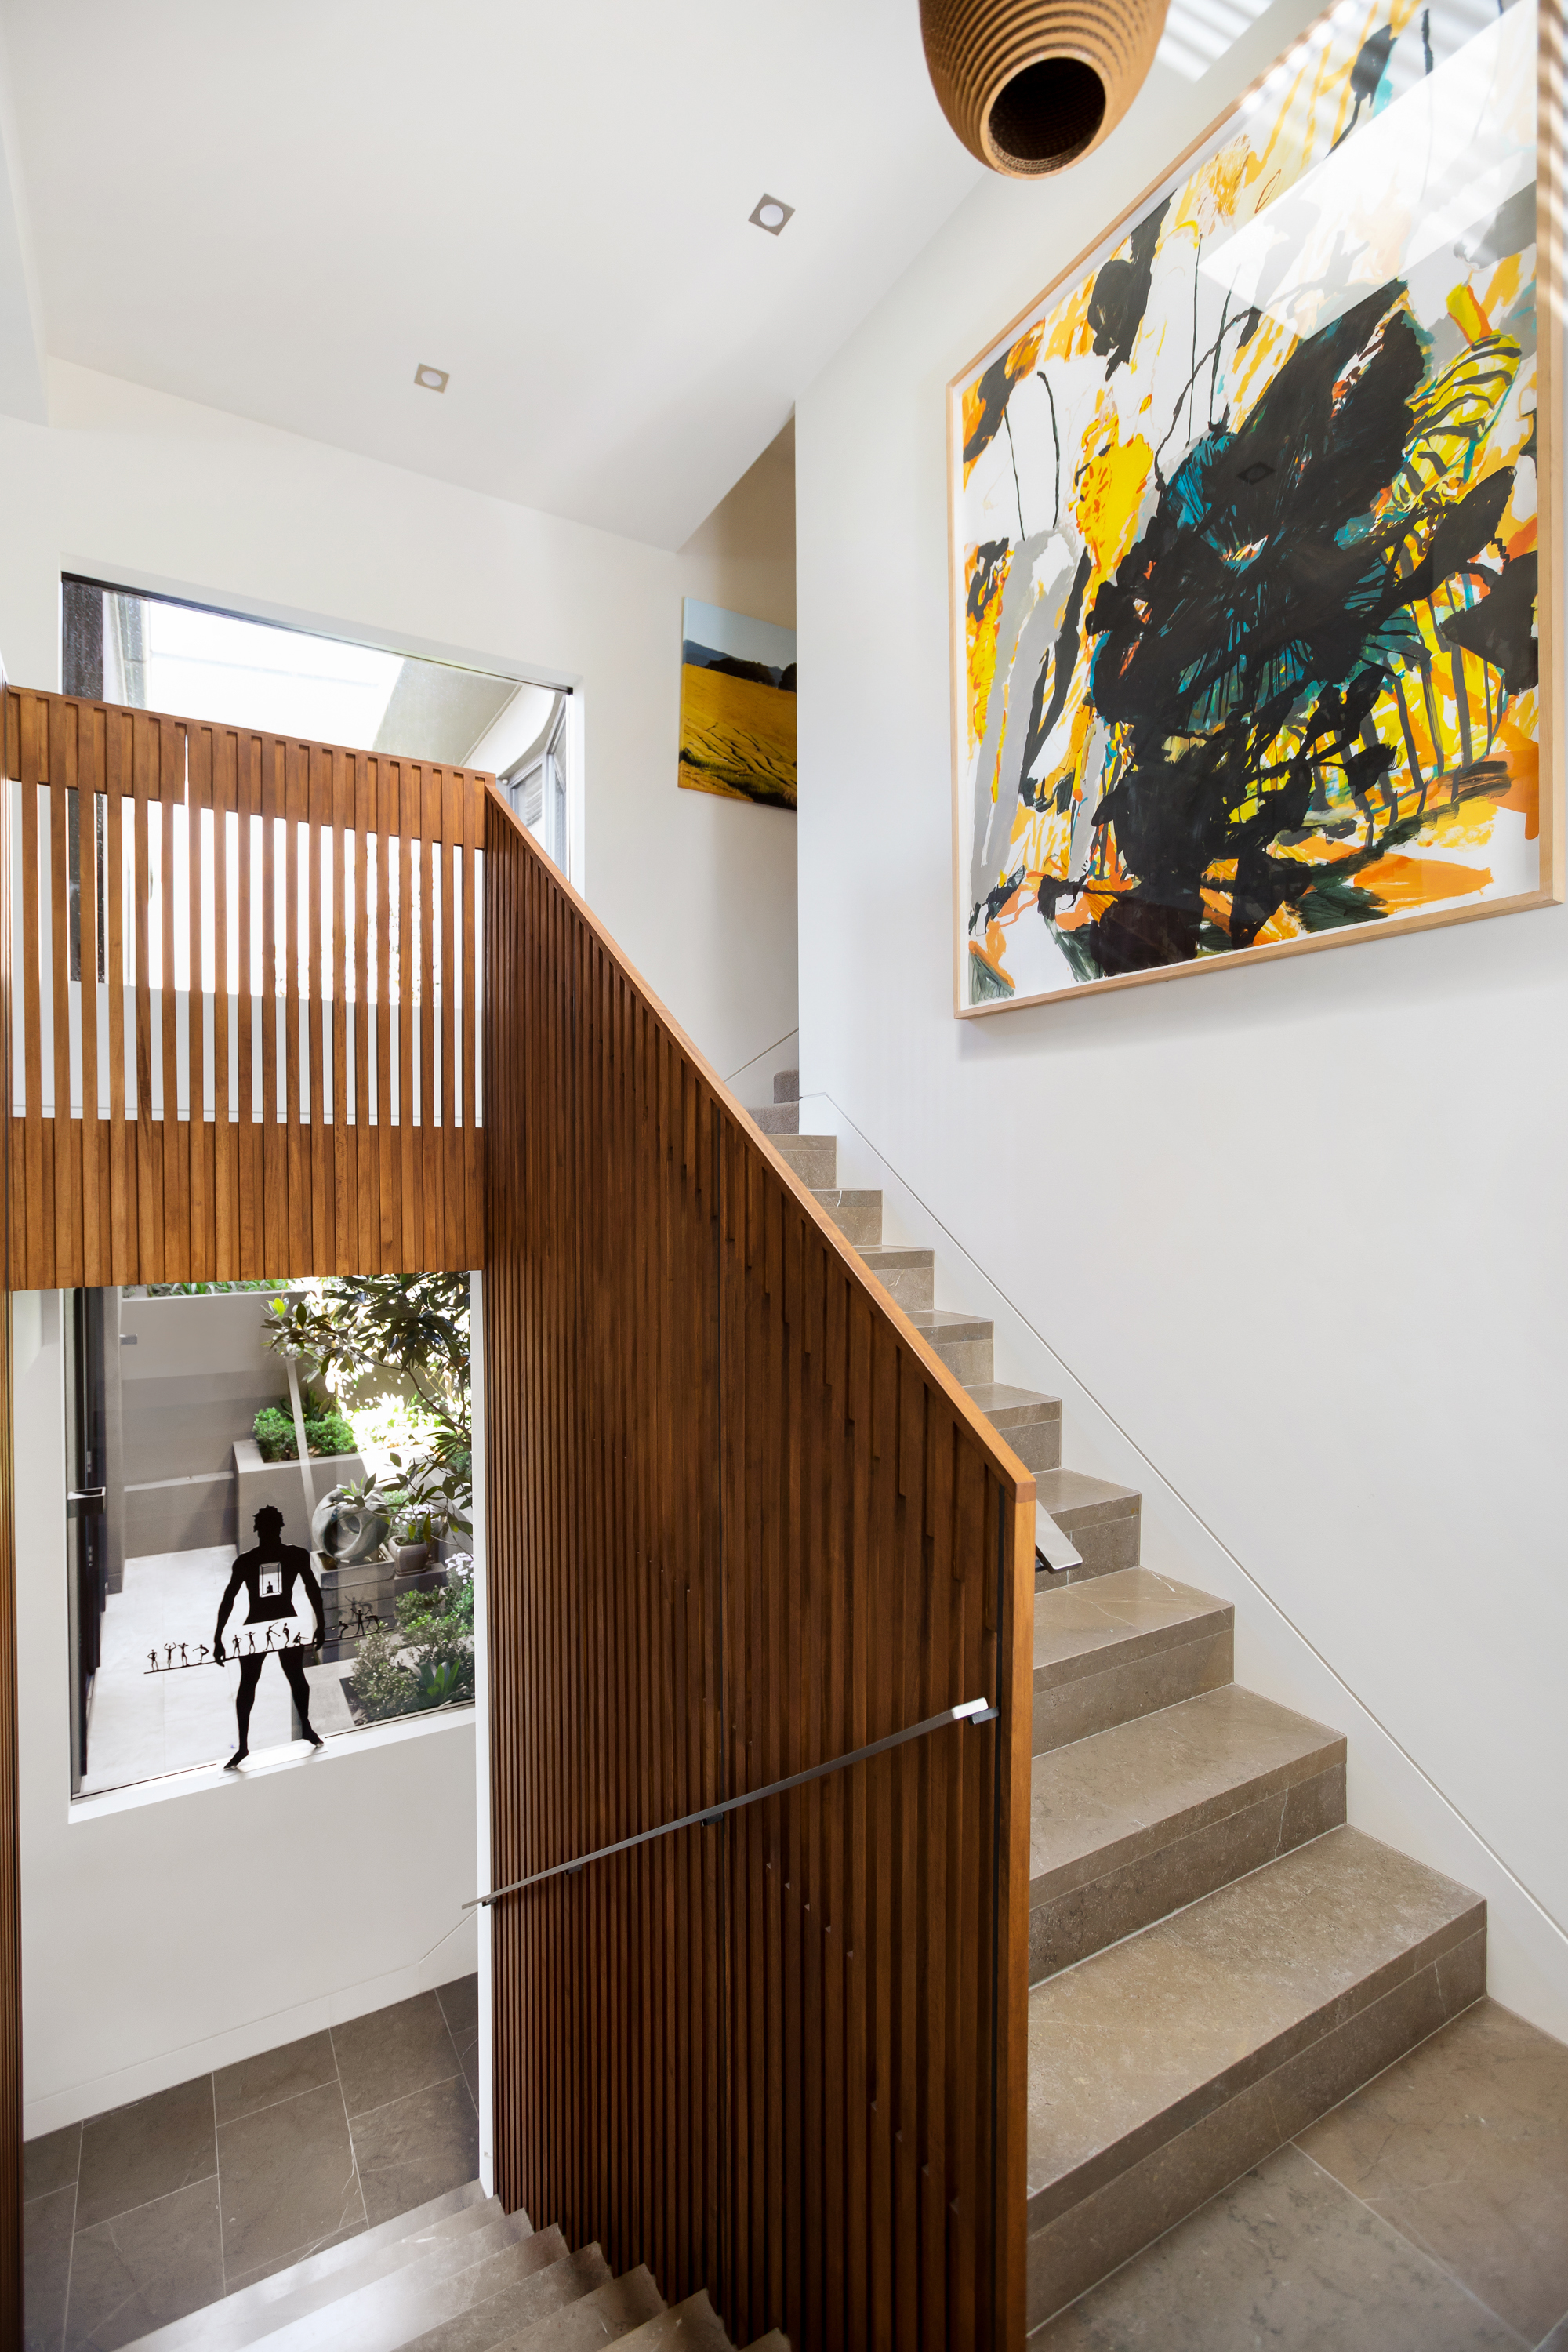 Hopetoun-Ave-25-Mosman-Stairs.jpg